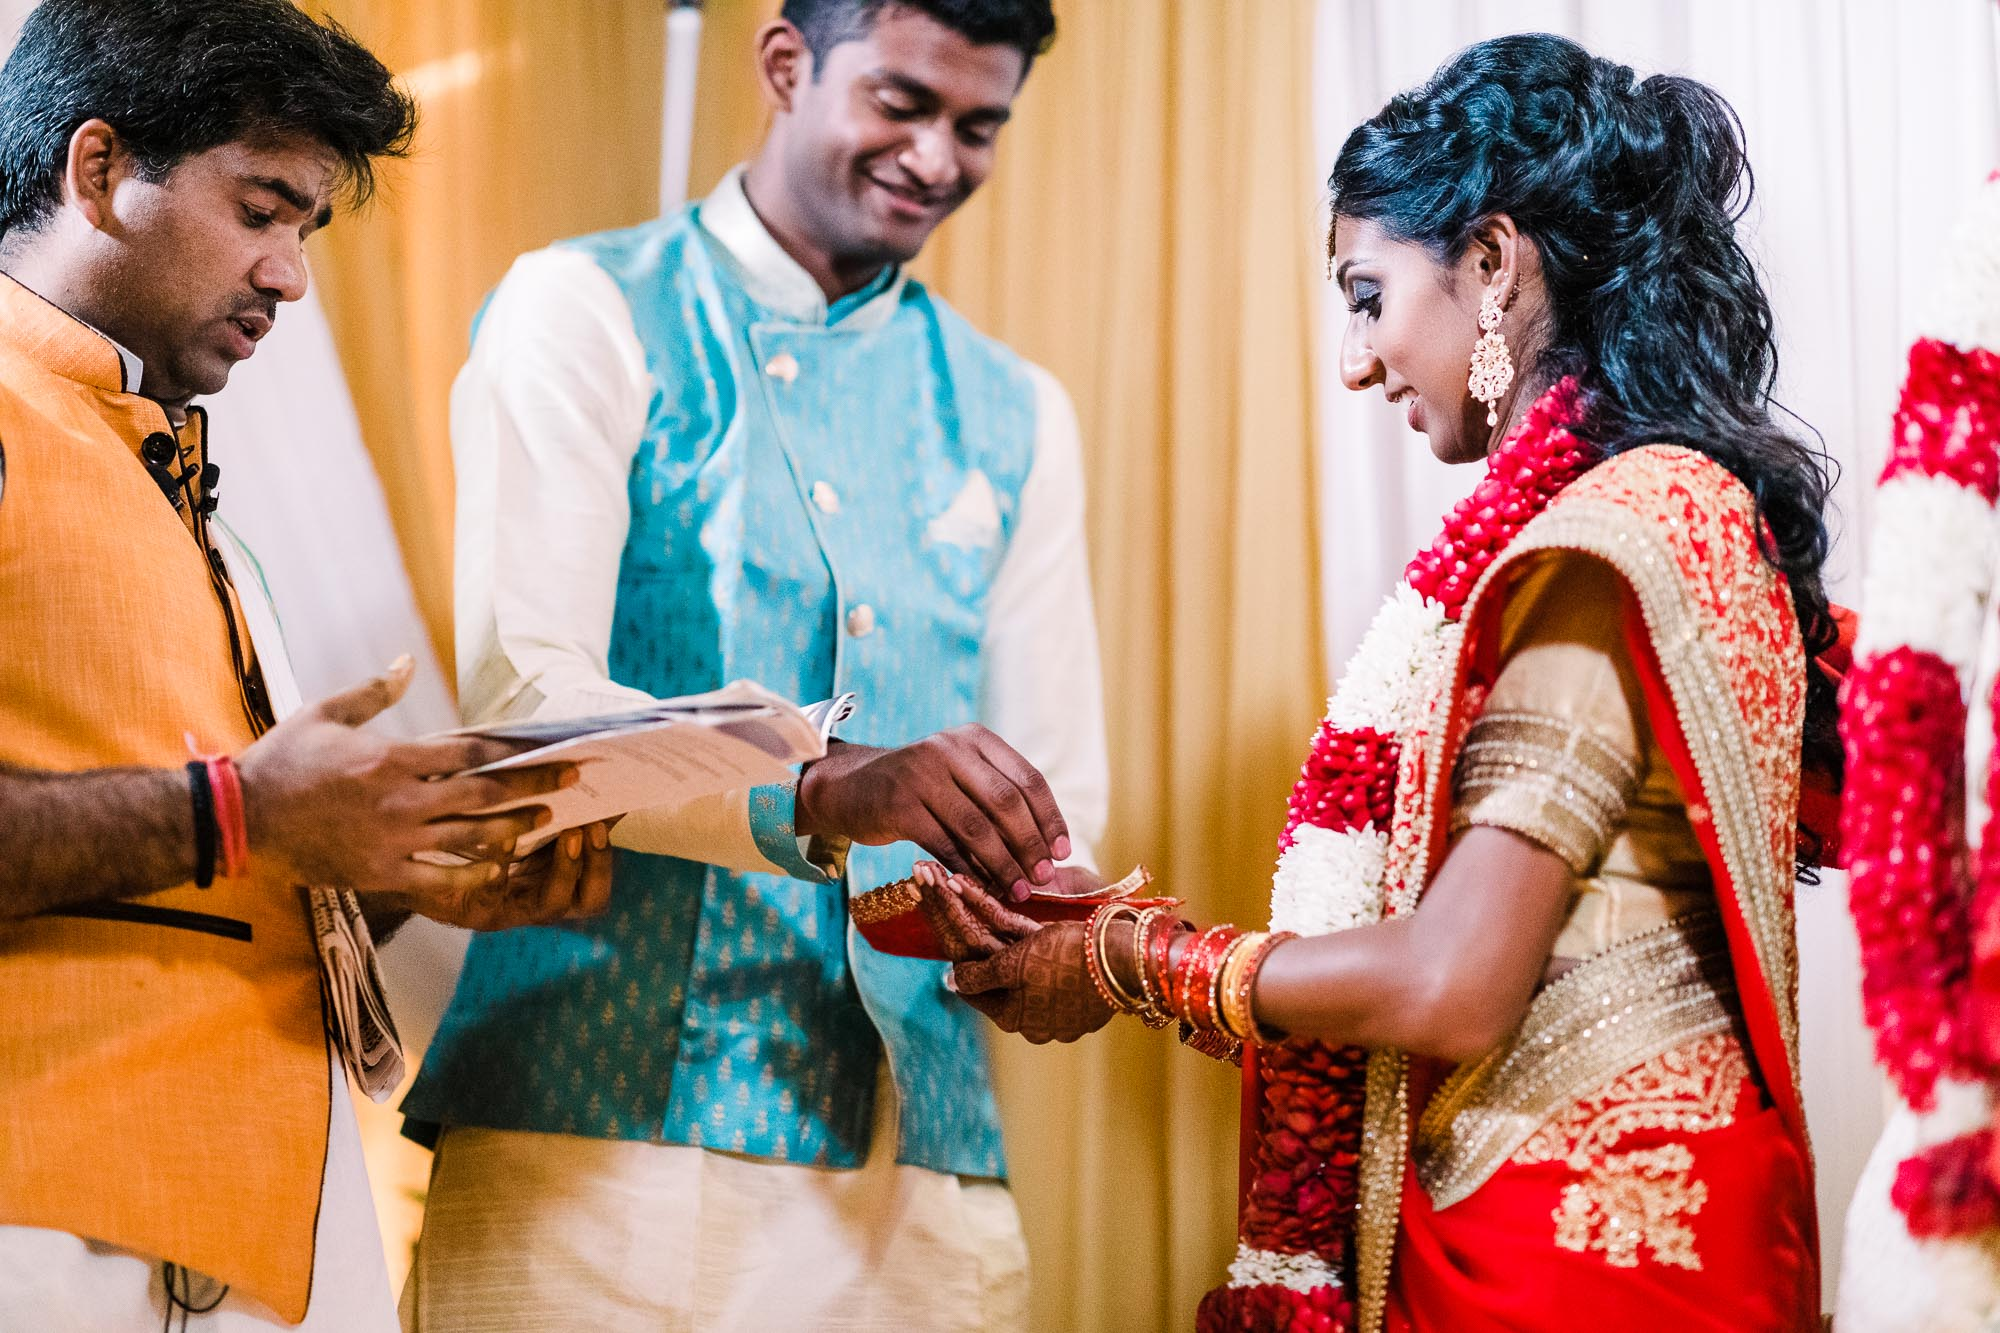 Scranton_Radisson_Hindu_Wedding-6704.jpg